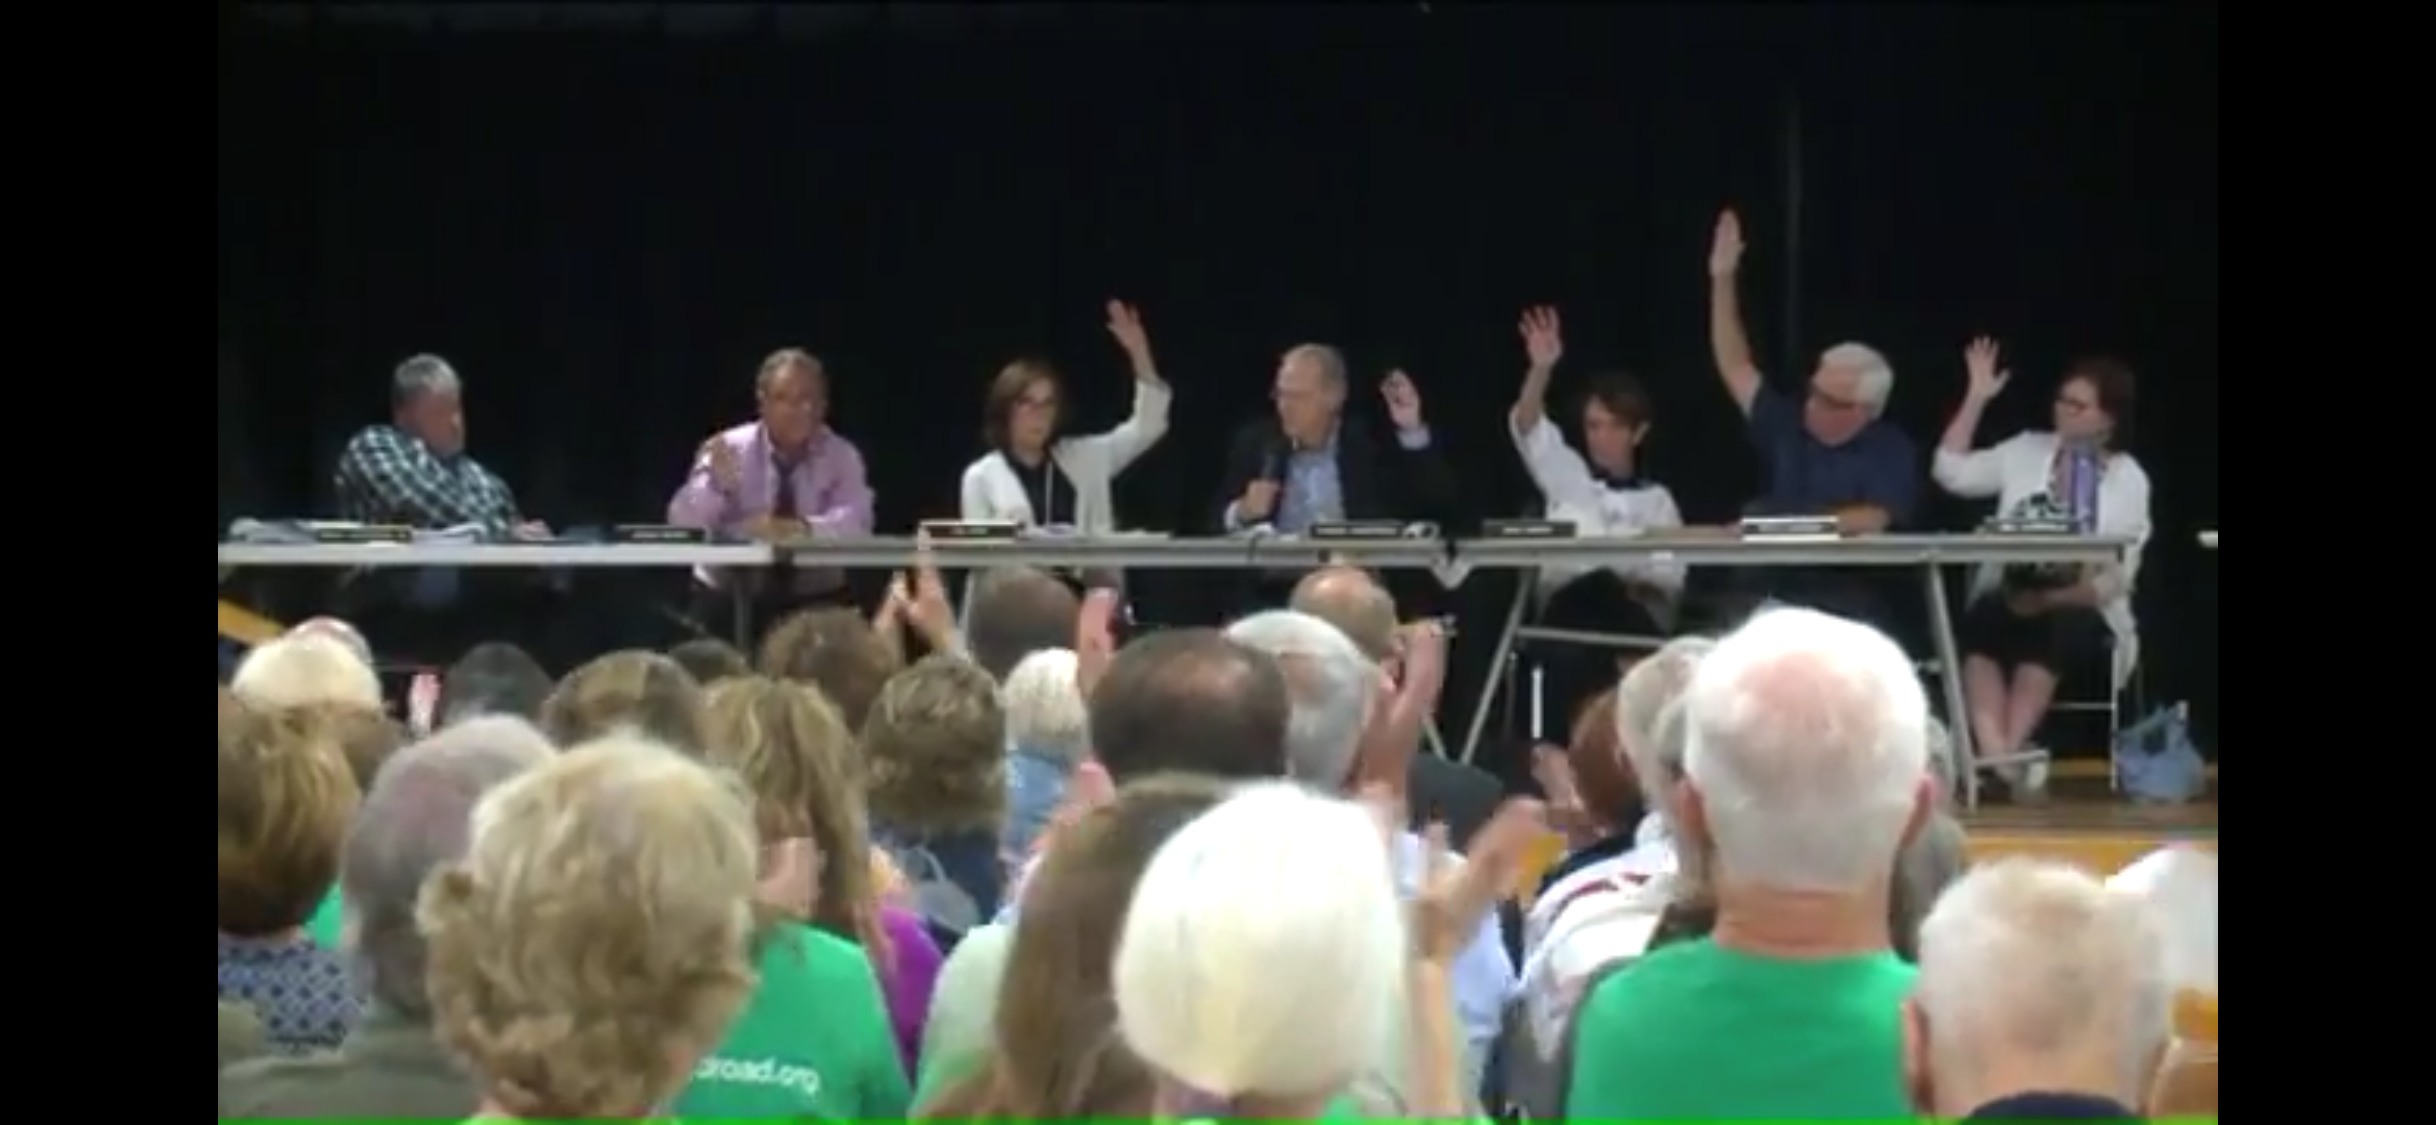 6 commissioner raise their hand to vote against the zone change. 1 does not.